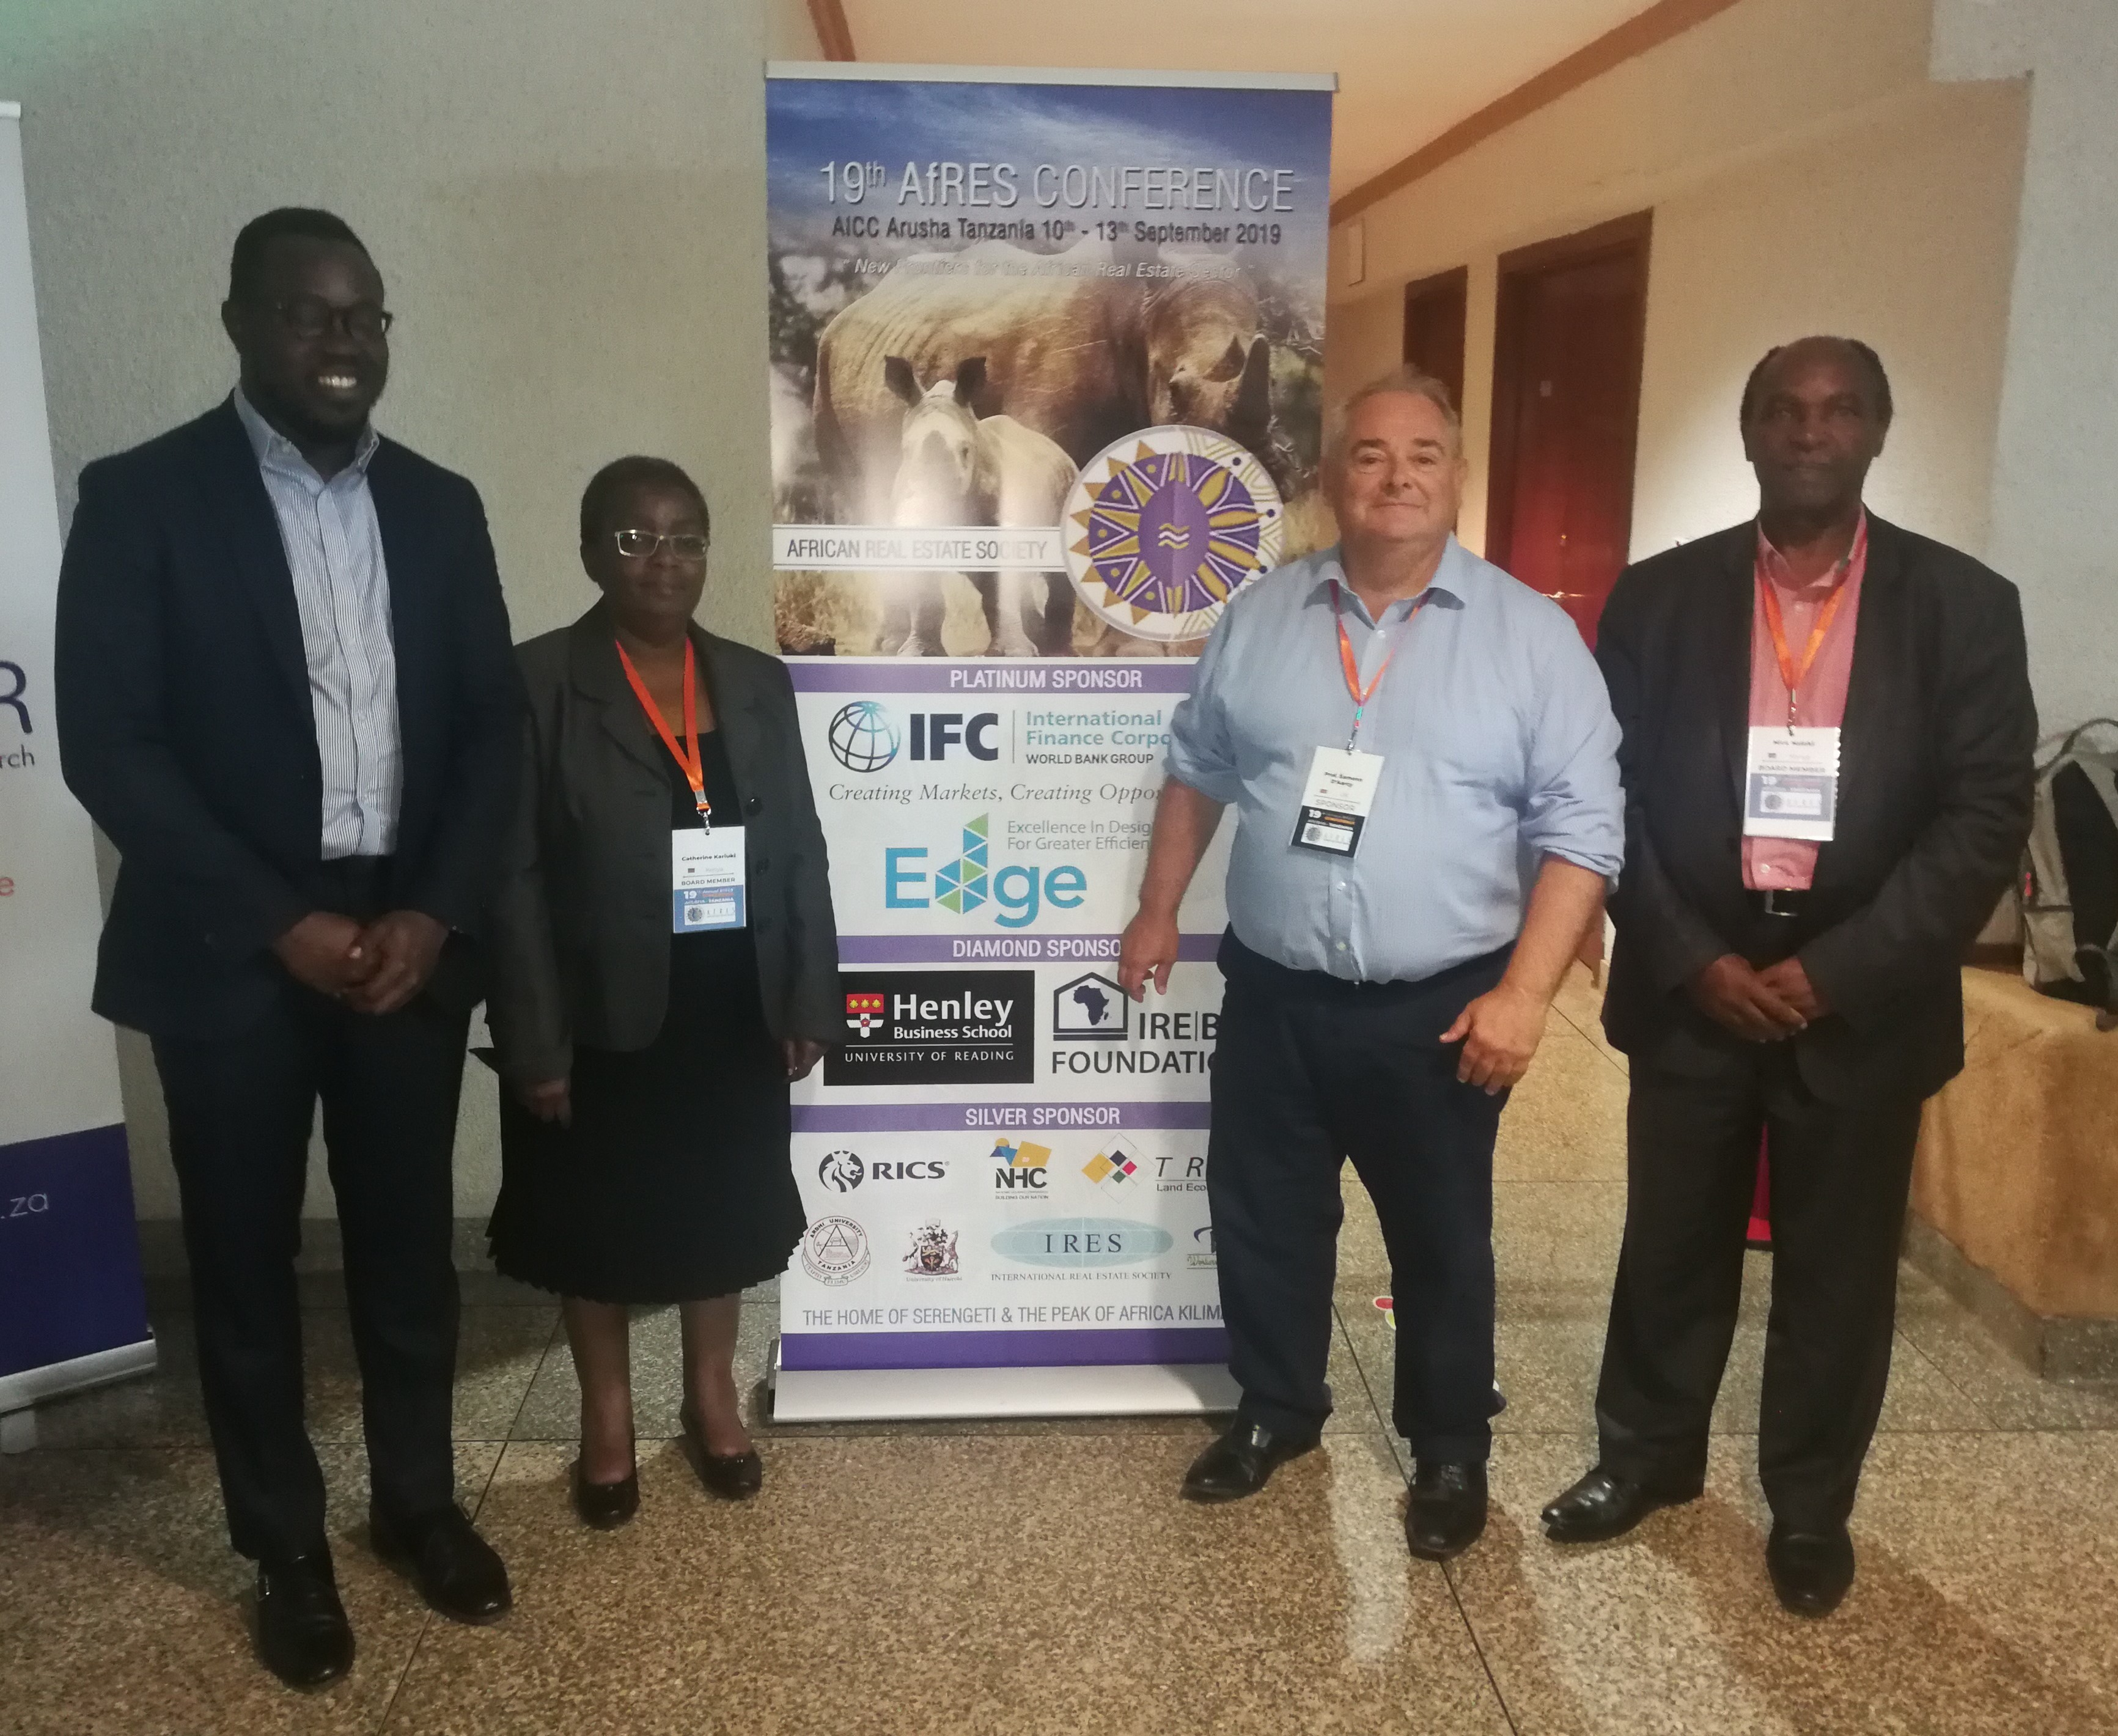 Henley Business School Sponsors 19th Annual Meeting of the African Real Estate Society